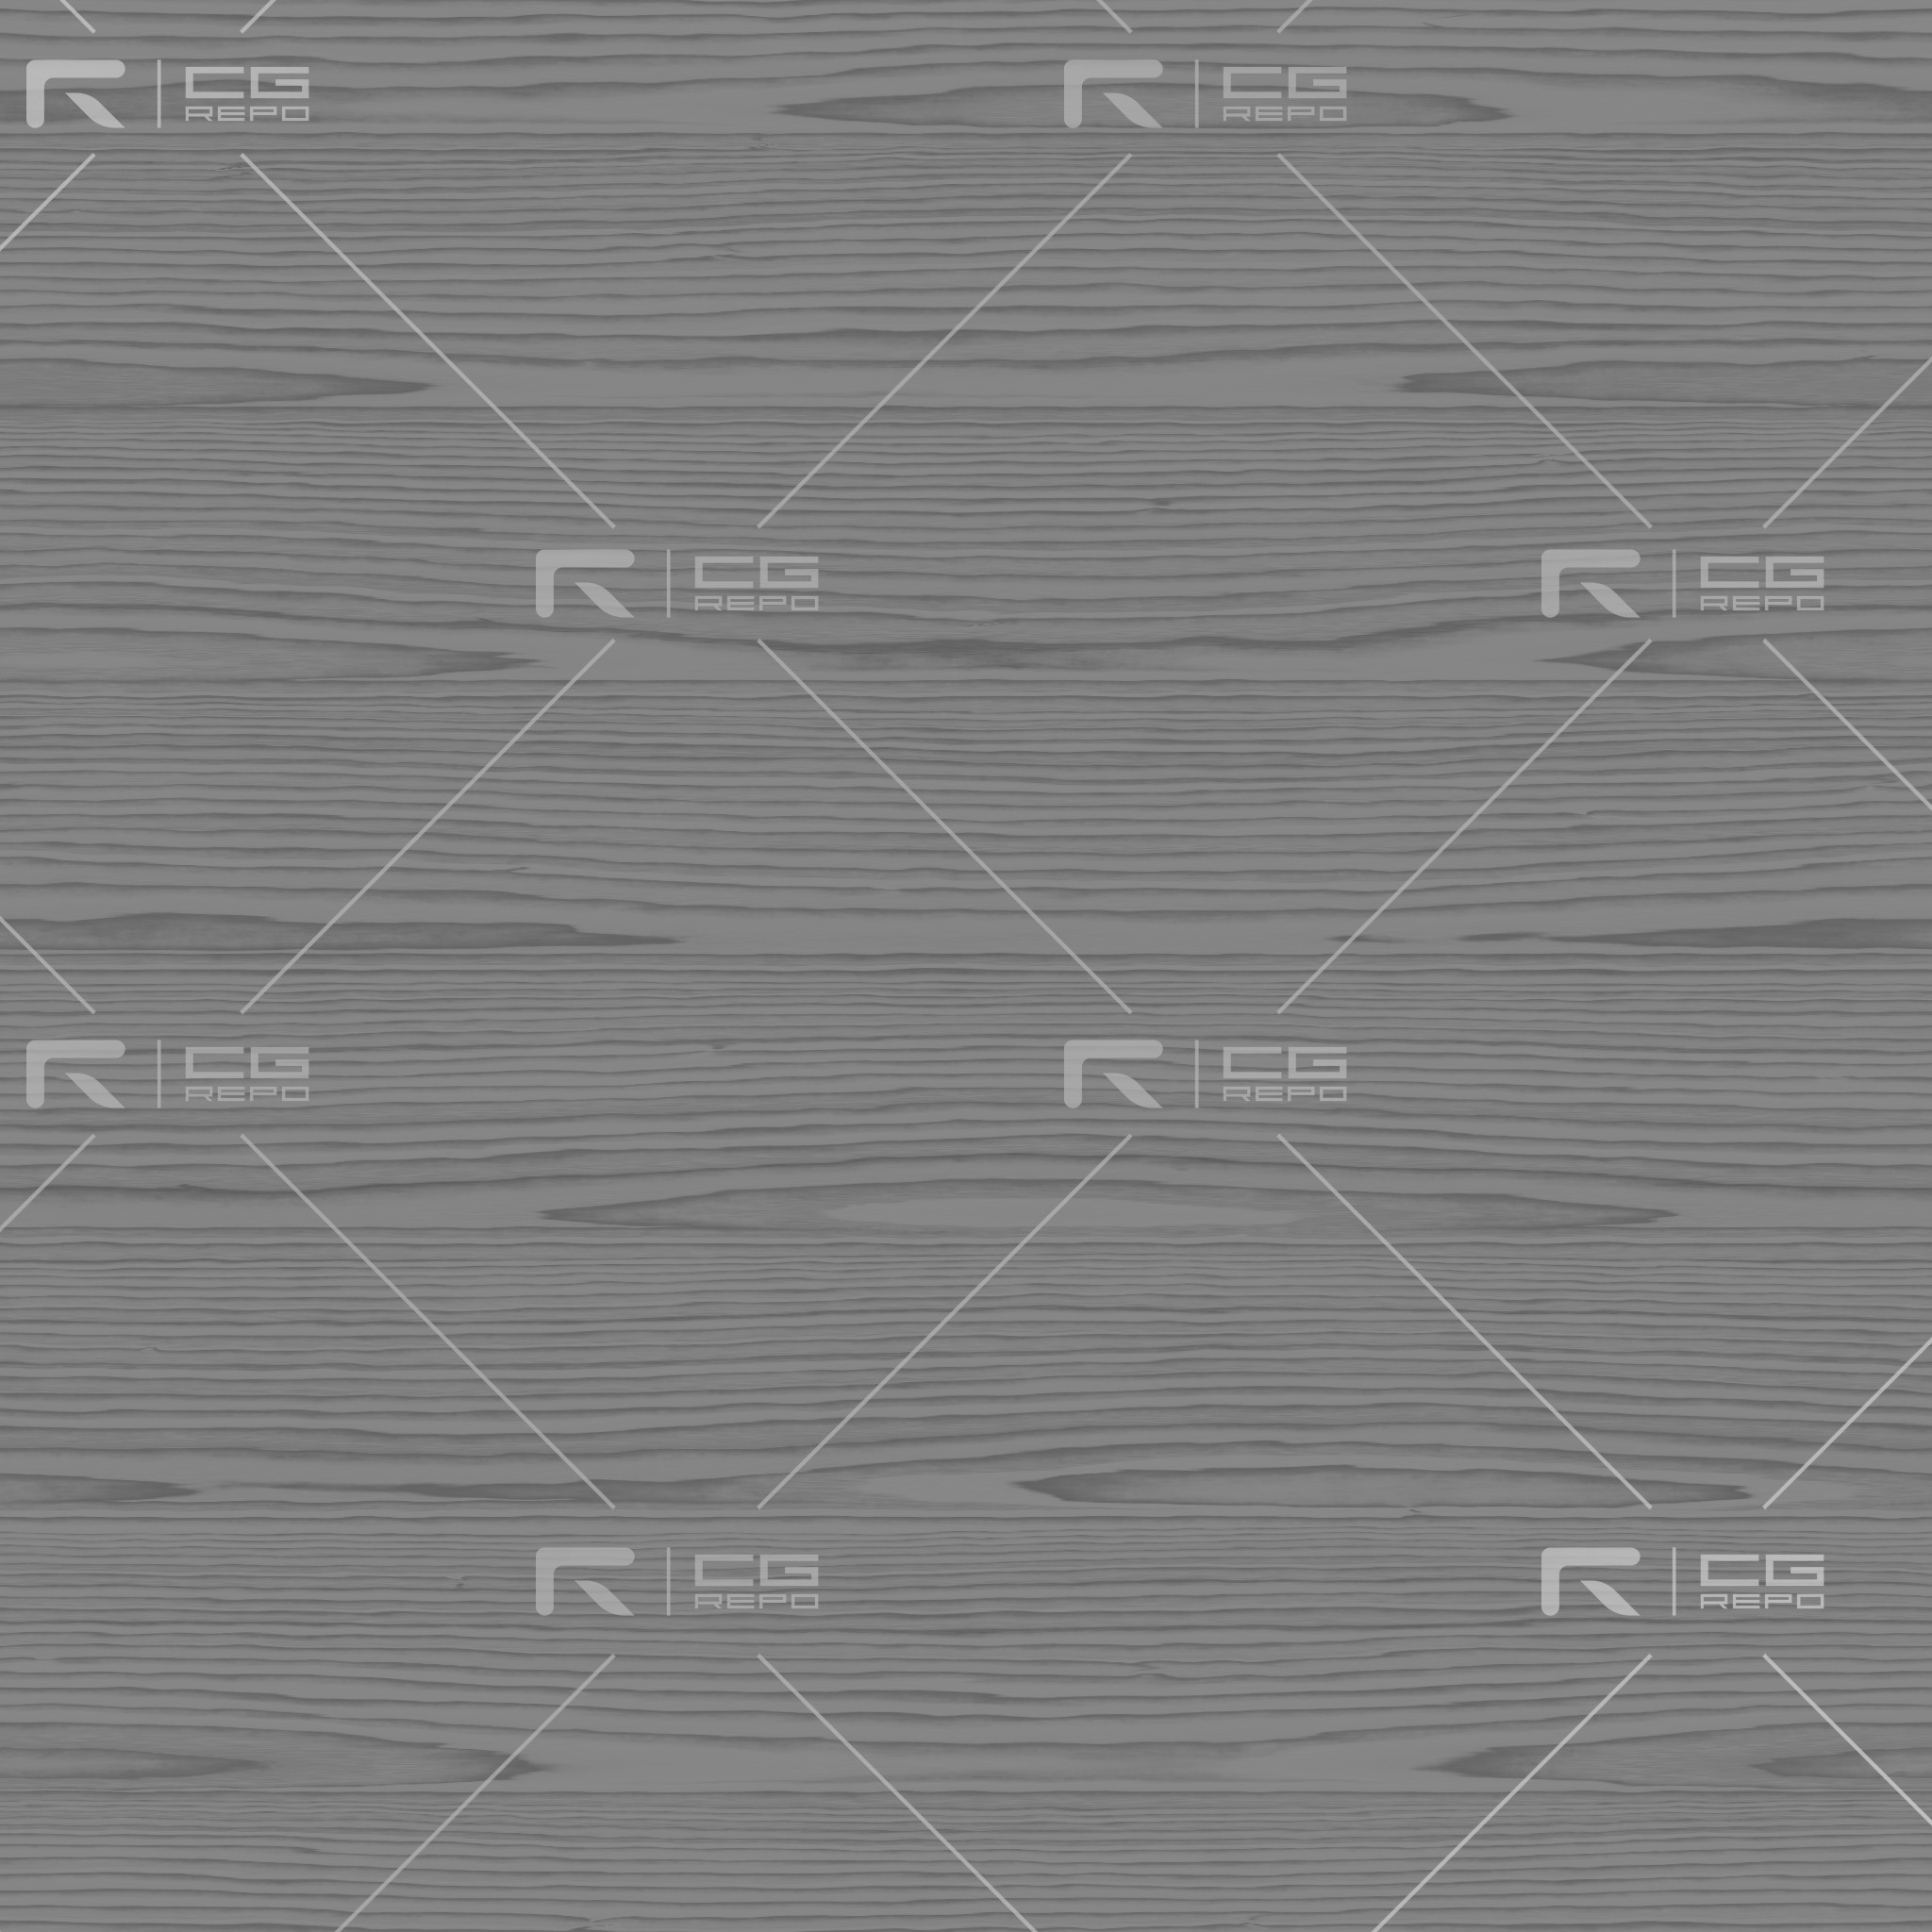 Oak - HardWood Natural - Rift Roughness Texture